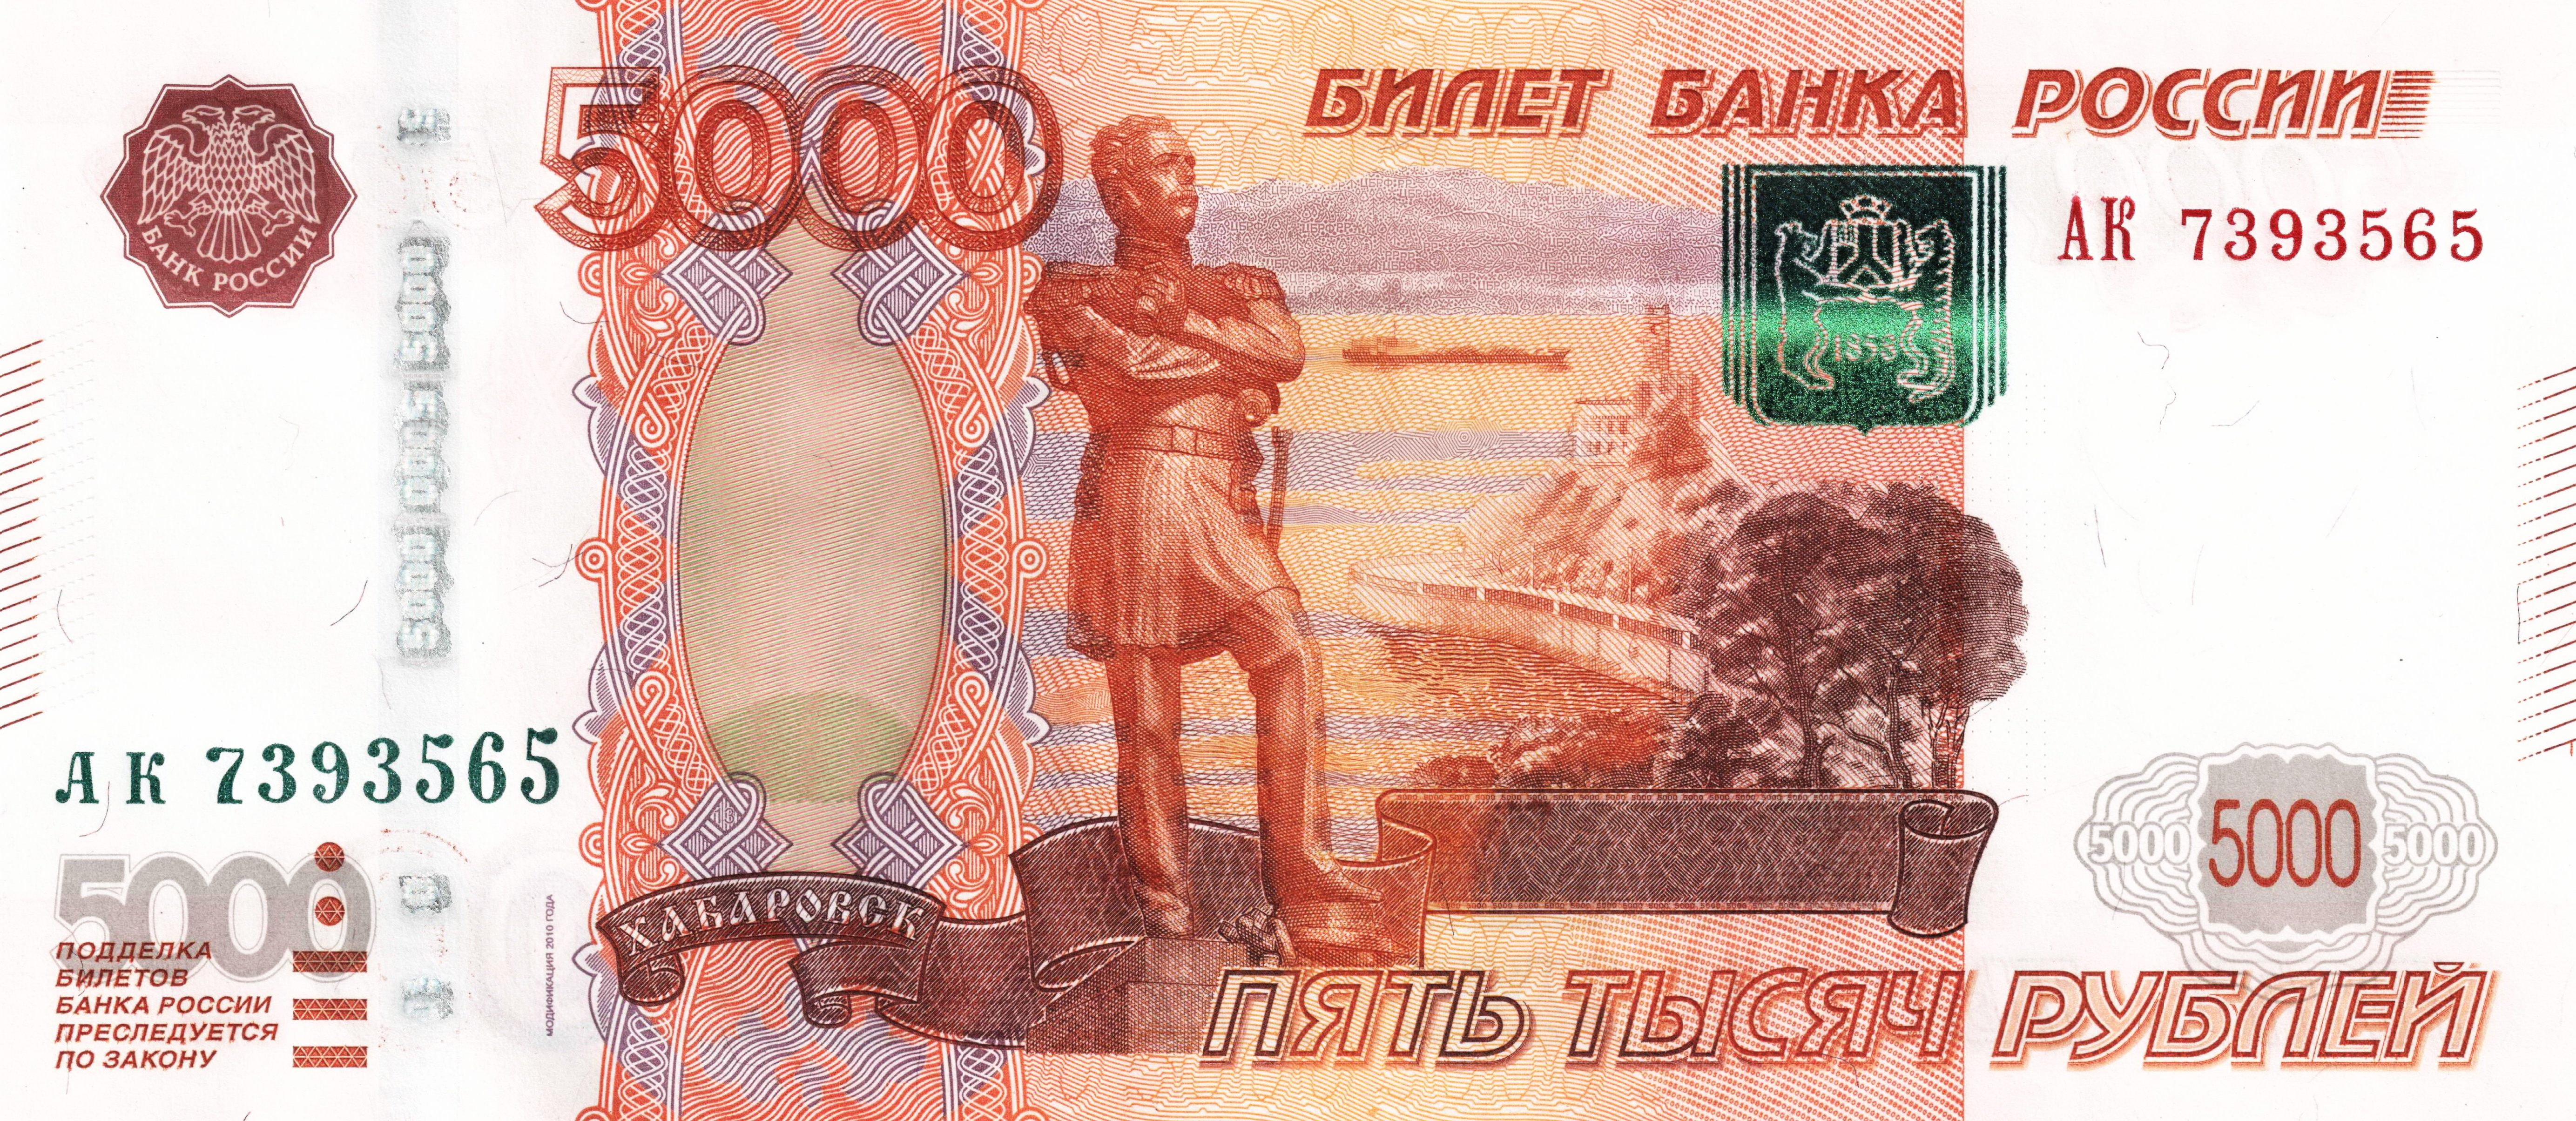 https://upload.wikimedia.org/wikipedia/commons/b/bf/Banknote_5000_rubles_2010_front.jpg